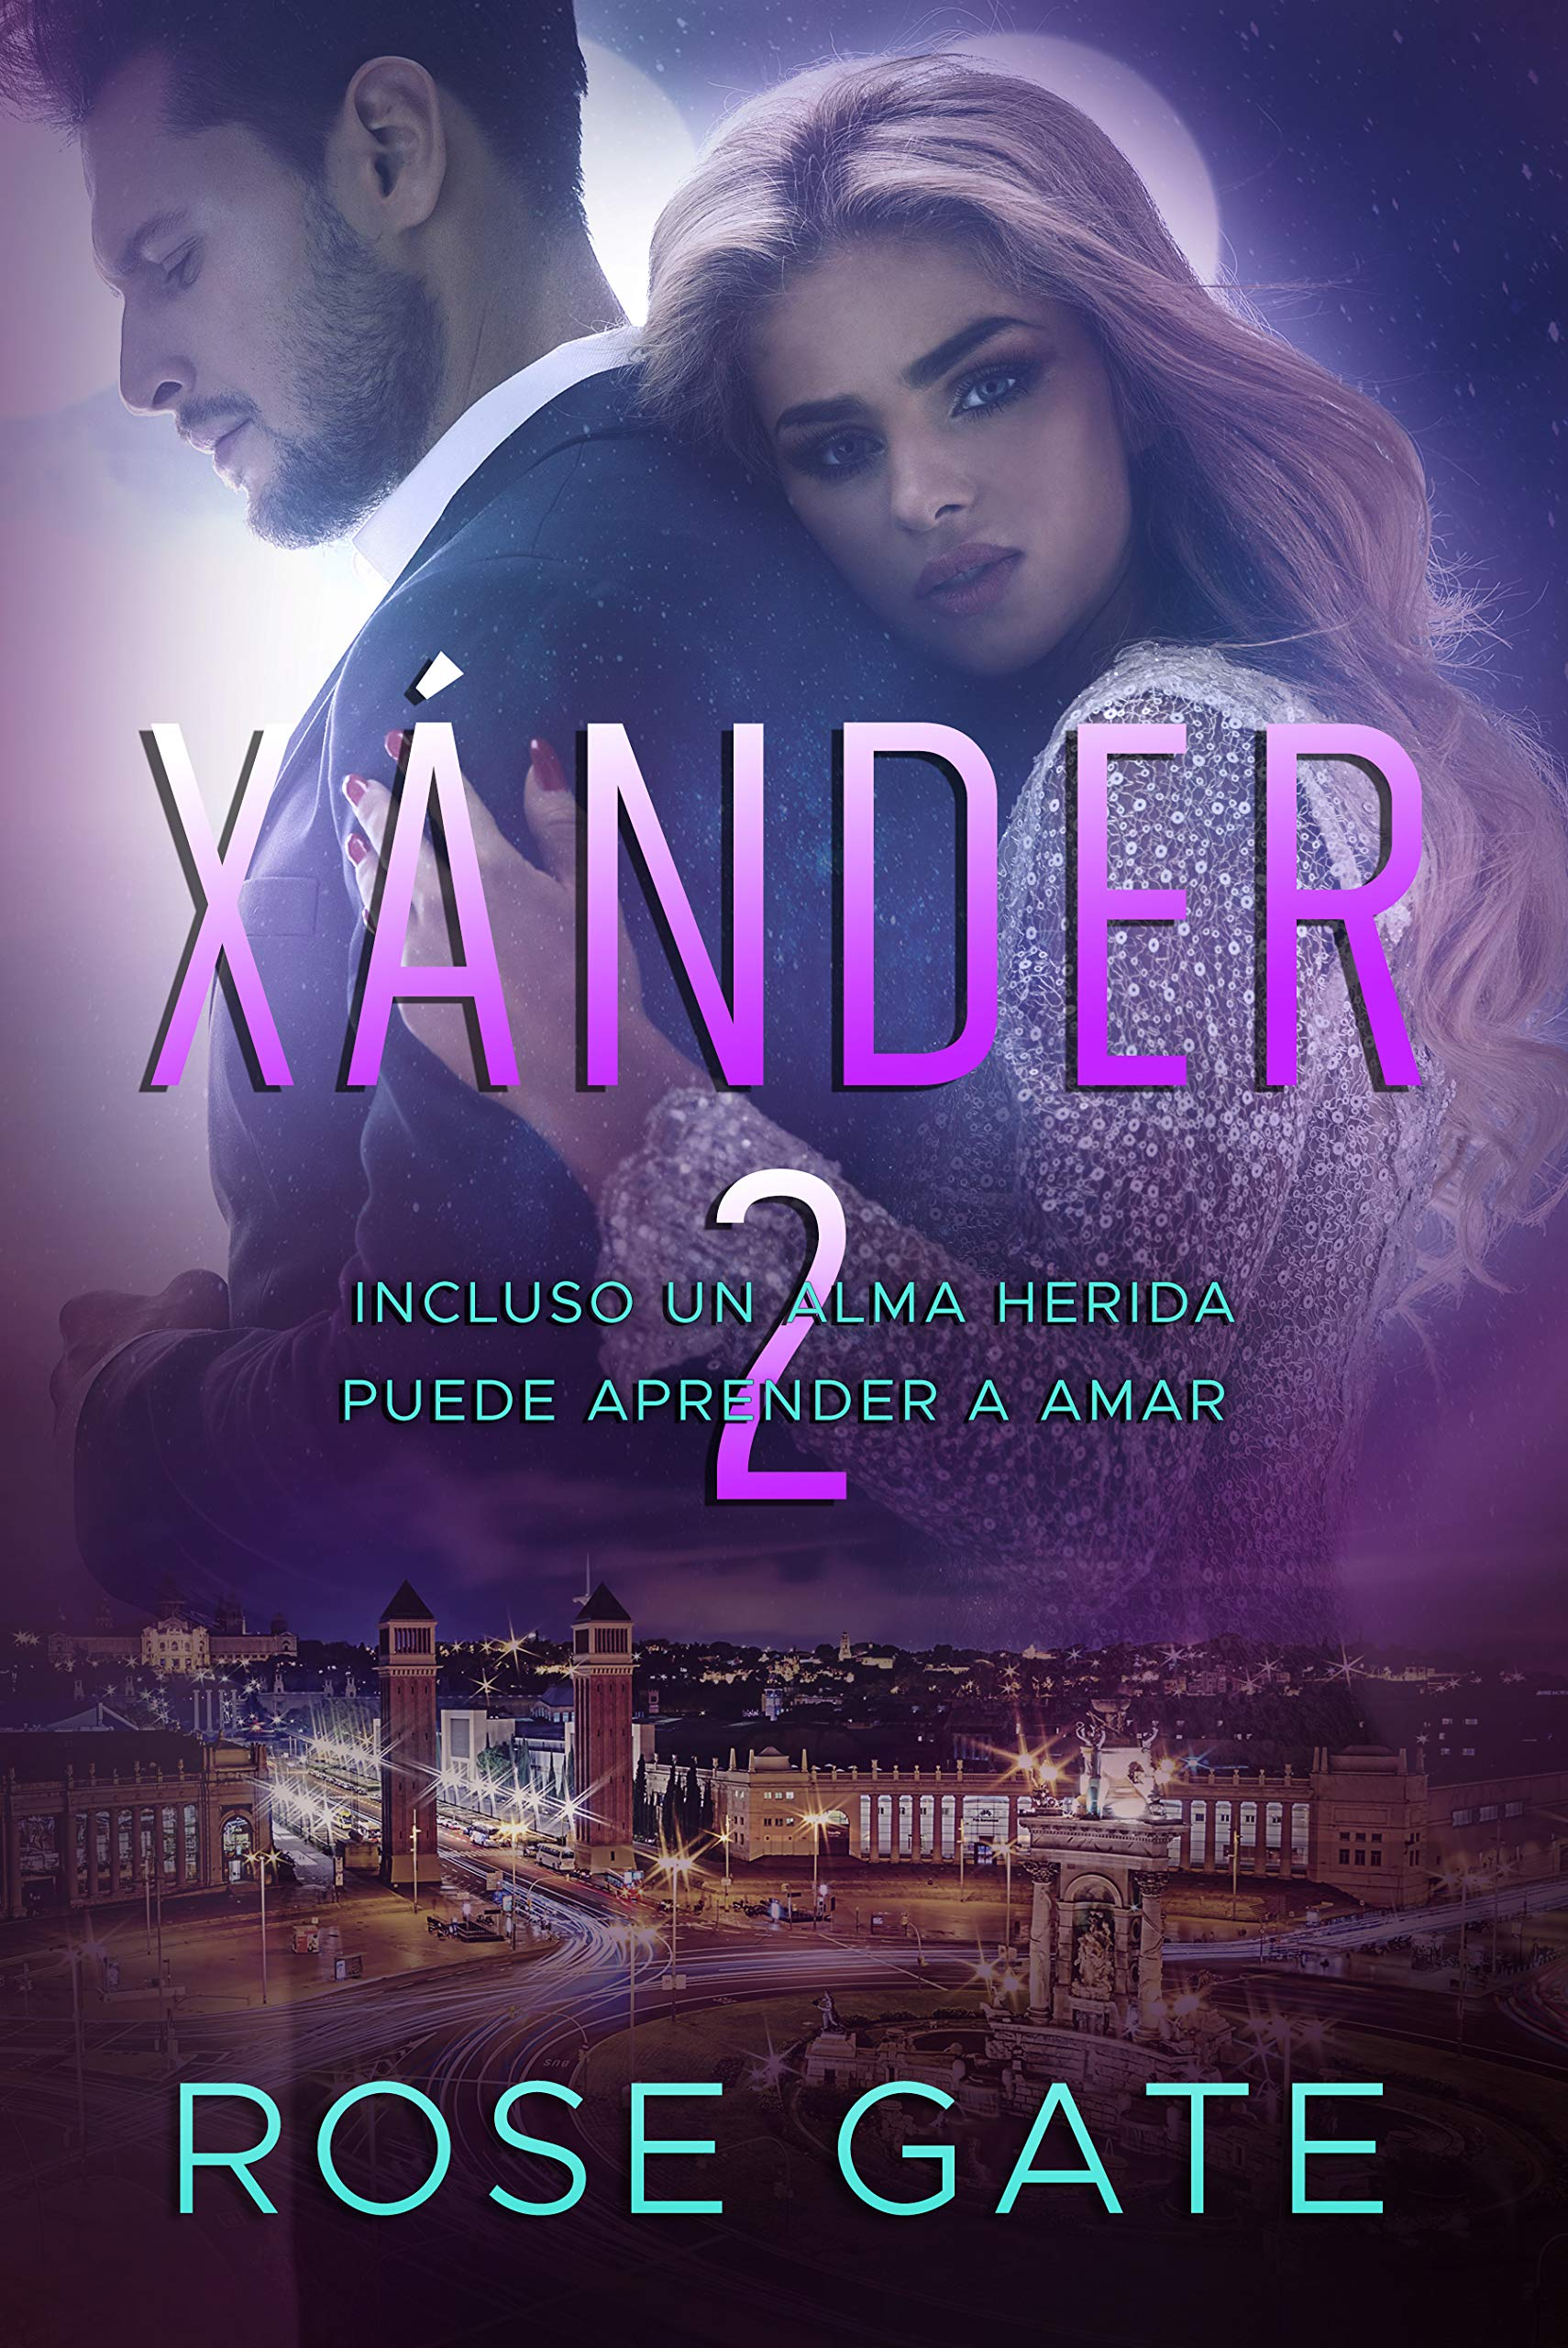 Xánder 2: Incluso un alma herida puede aprender a amar